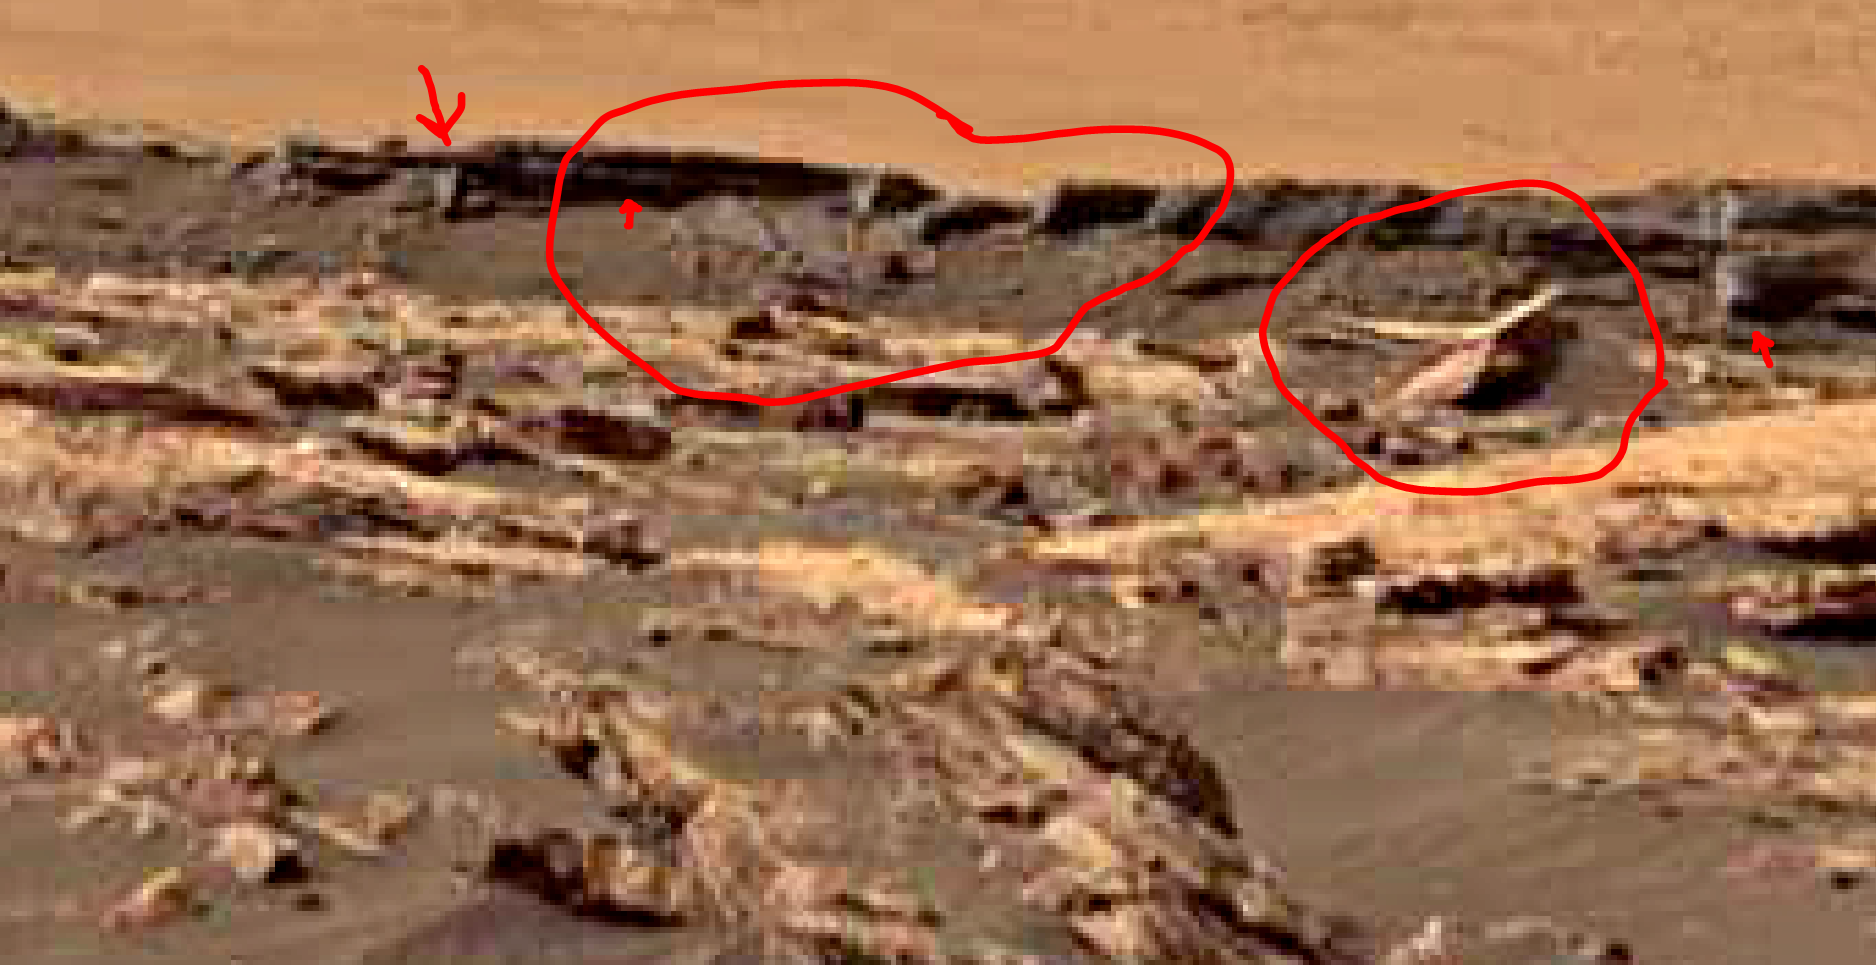 mars-sol-1507-anomaly-artifacts-2-was-life-on-mars